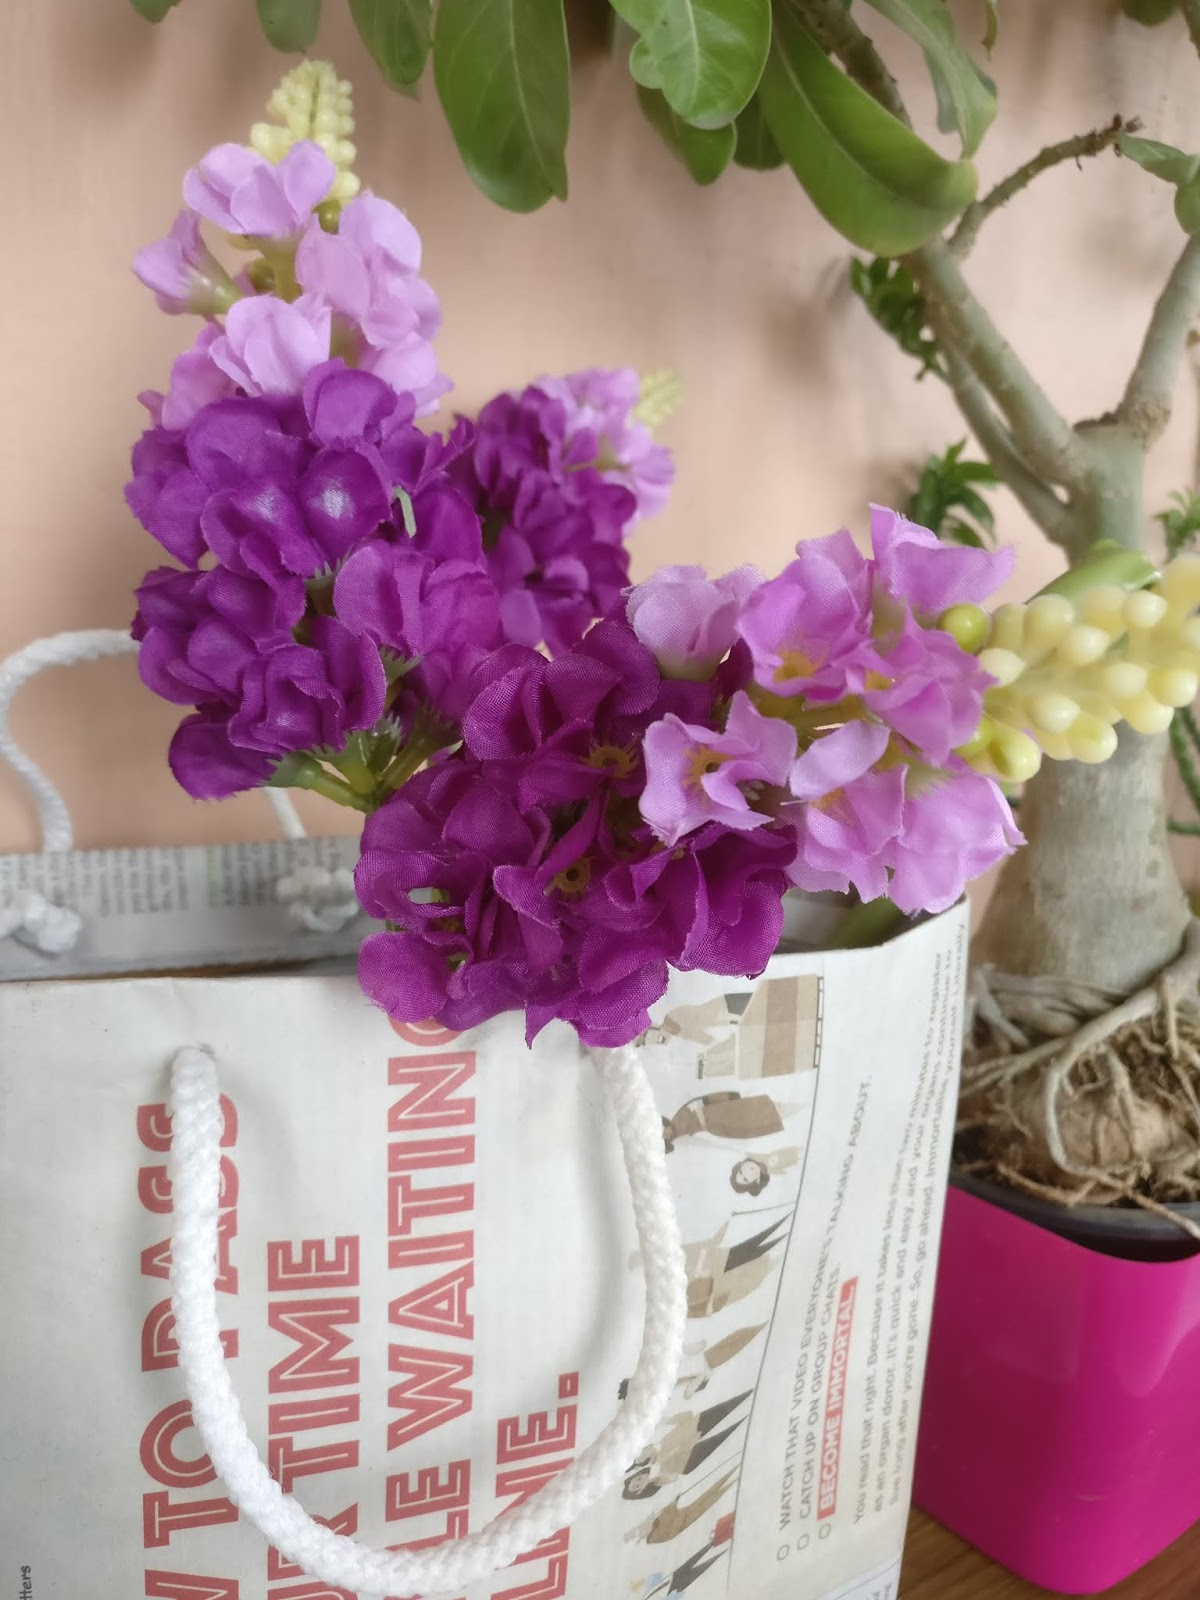 How to make a paper bag using old newspaper